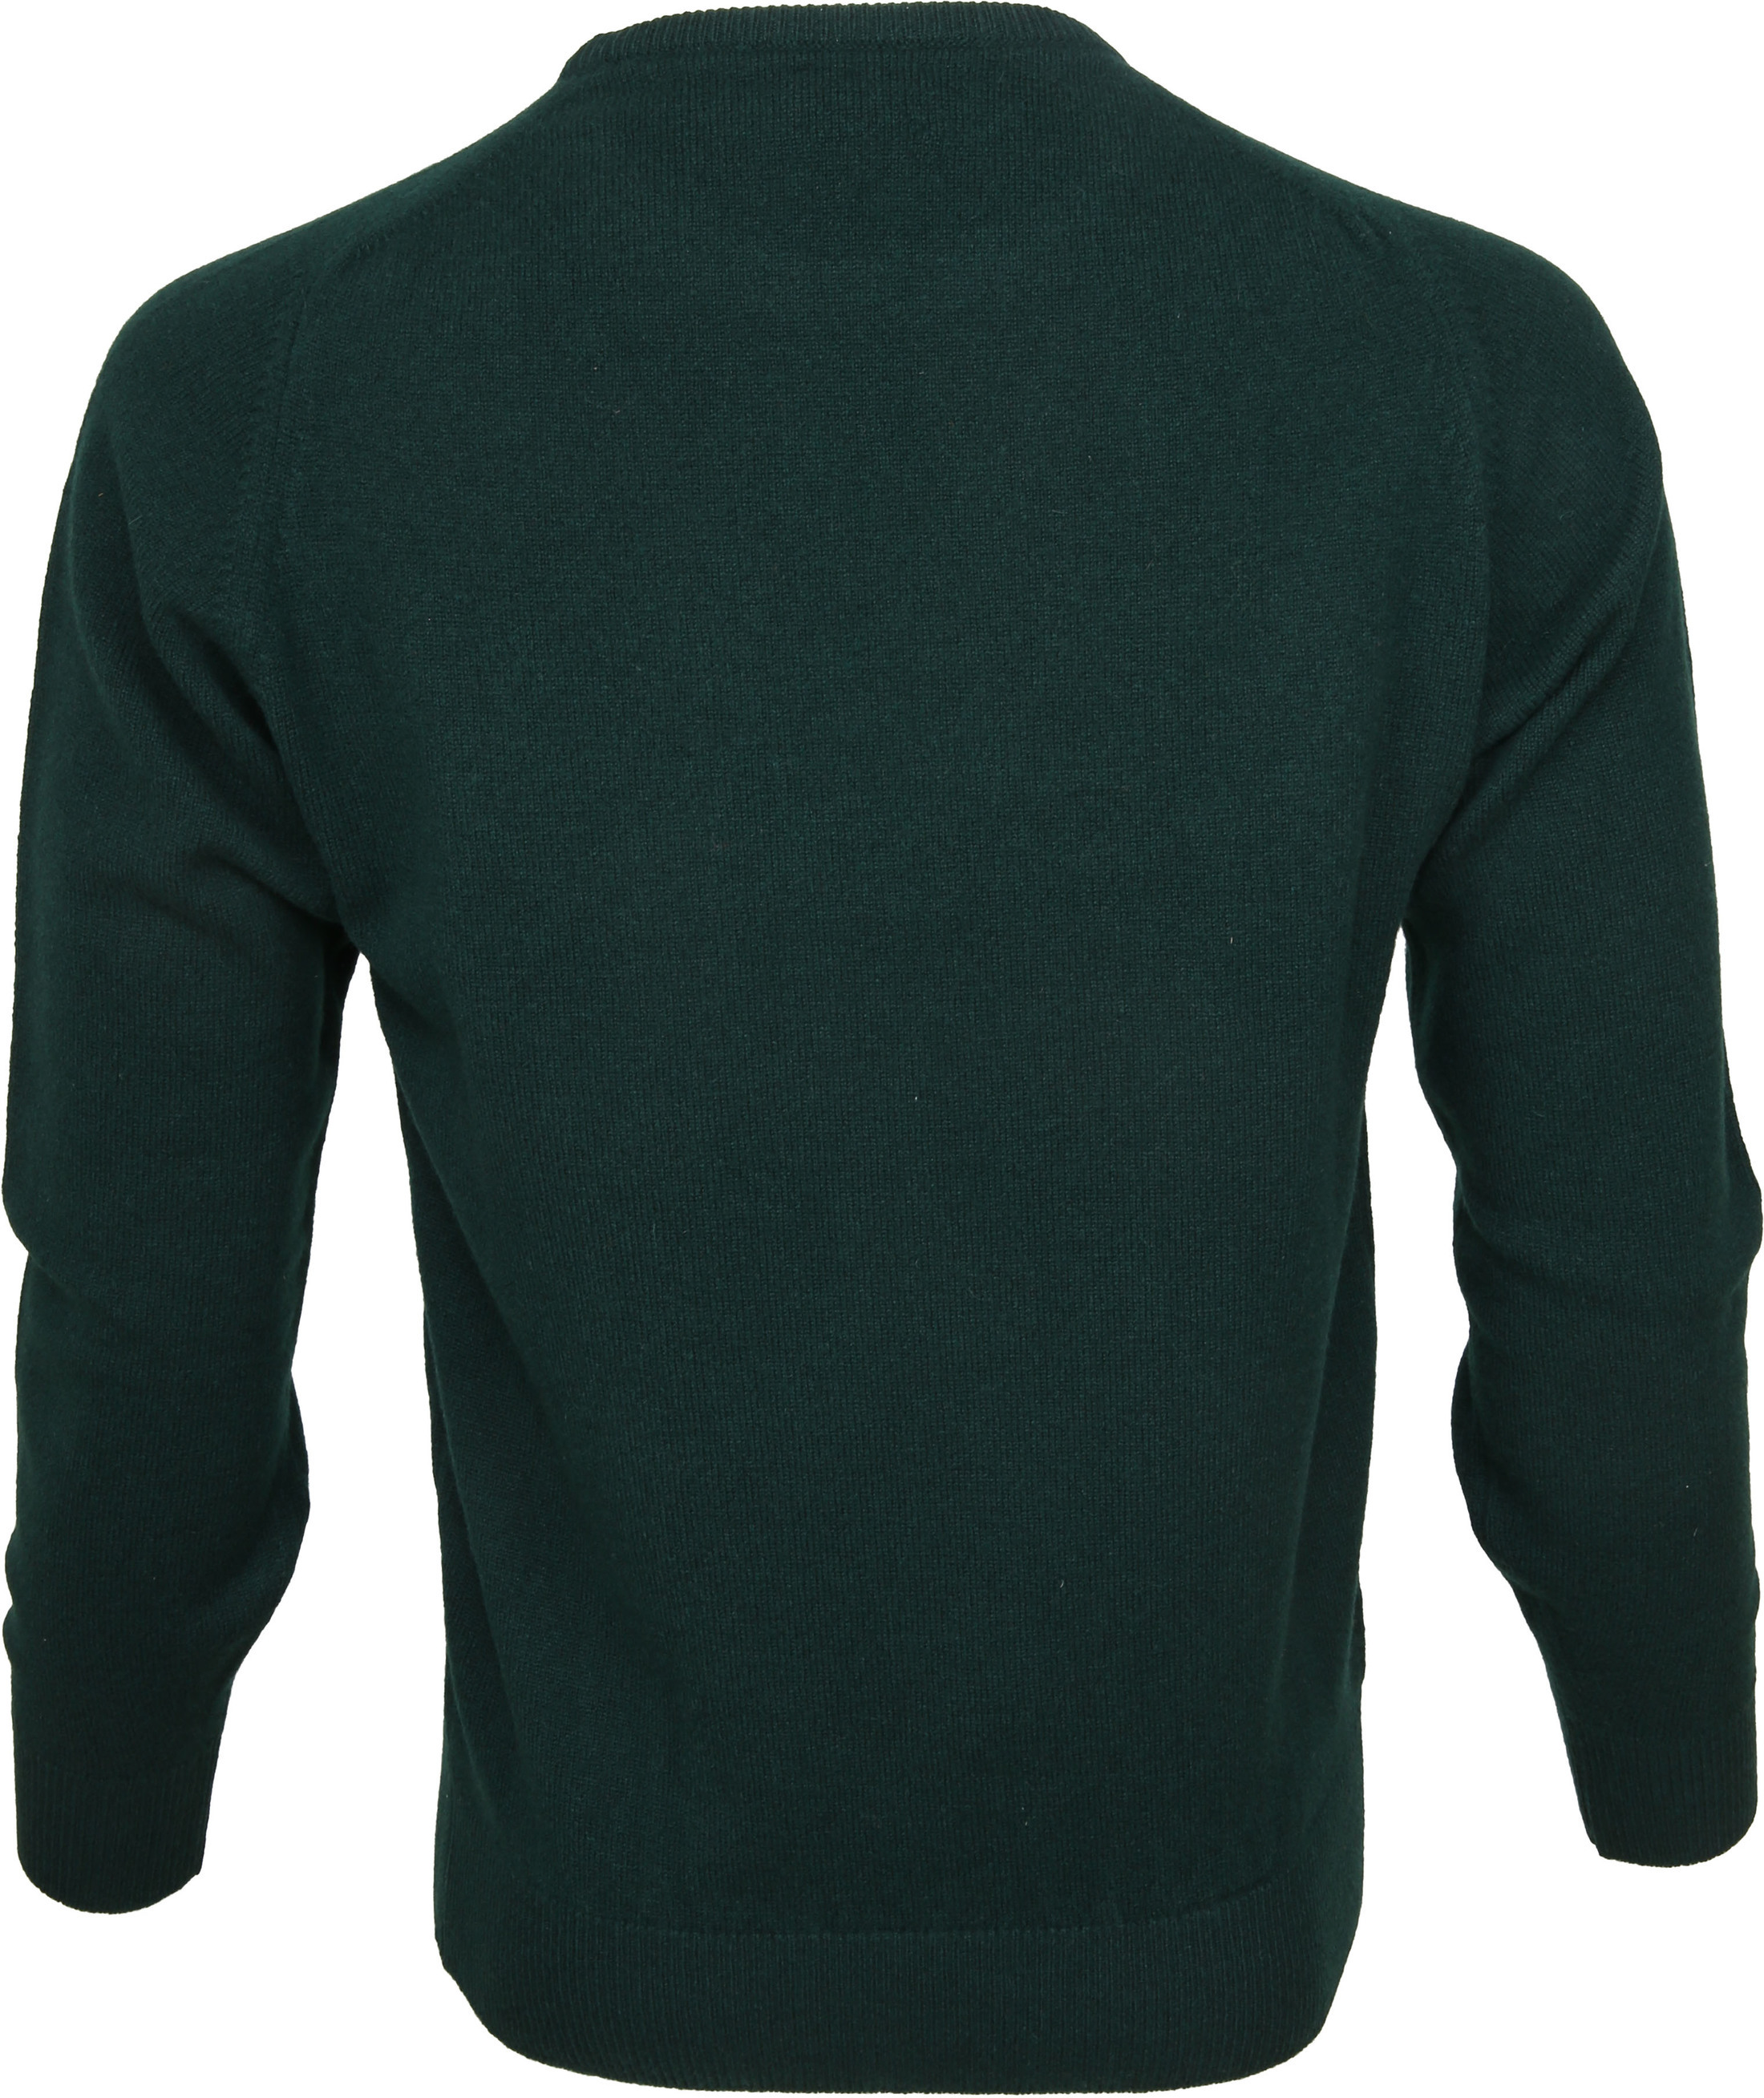 William Lockie Lambswool Mos Groen foto 2